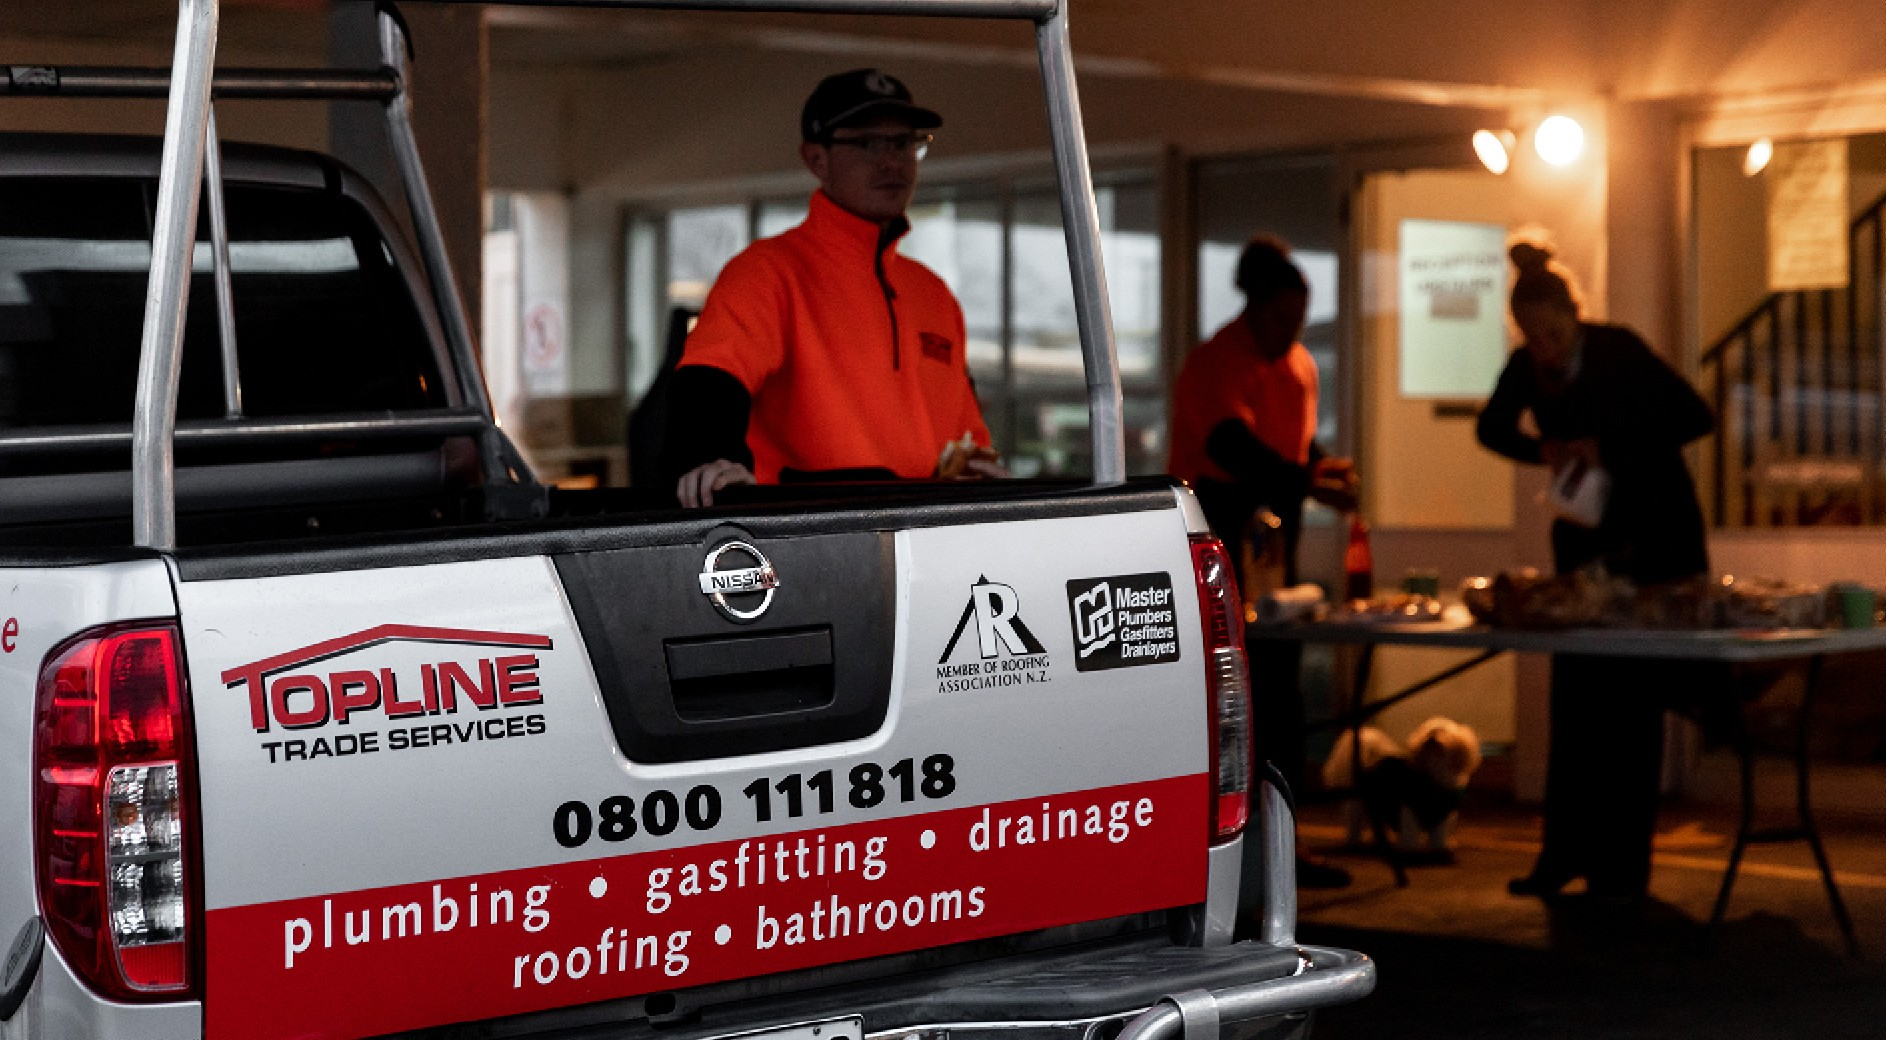 Topline Trade Services Auckland Plumbing Gasfitting And